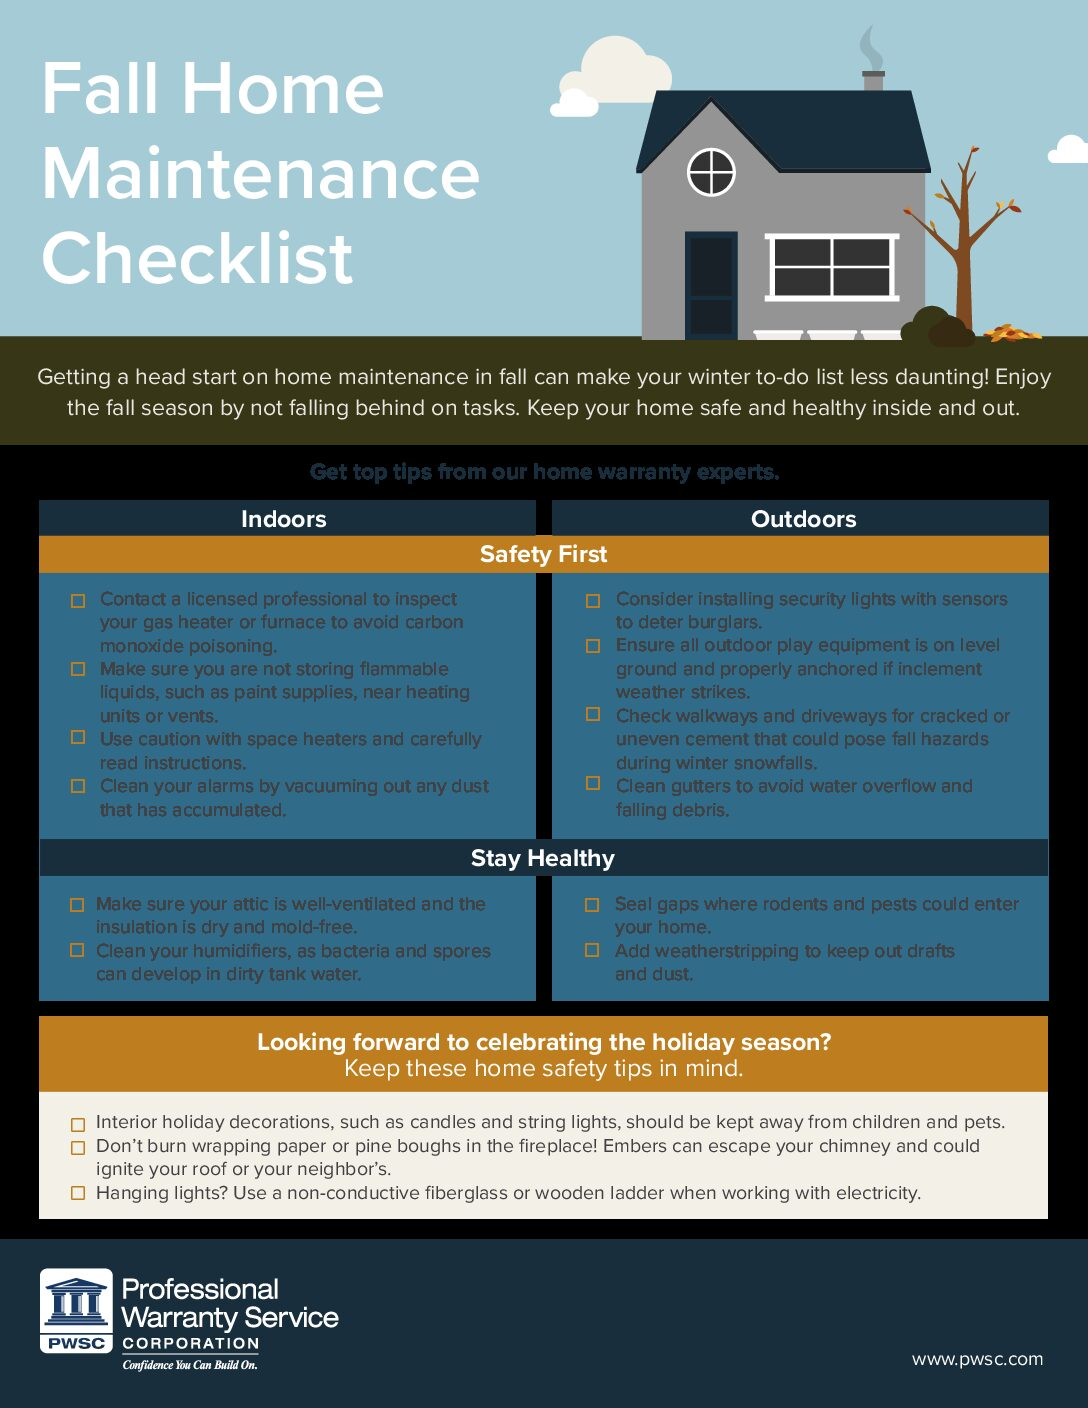 Fall Home Maintenance Guide - Professional Warranty Service